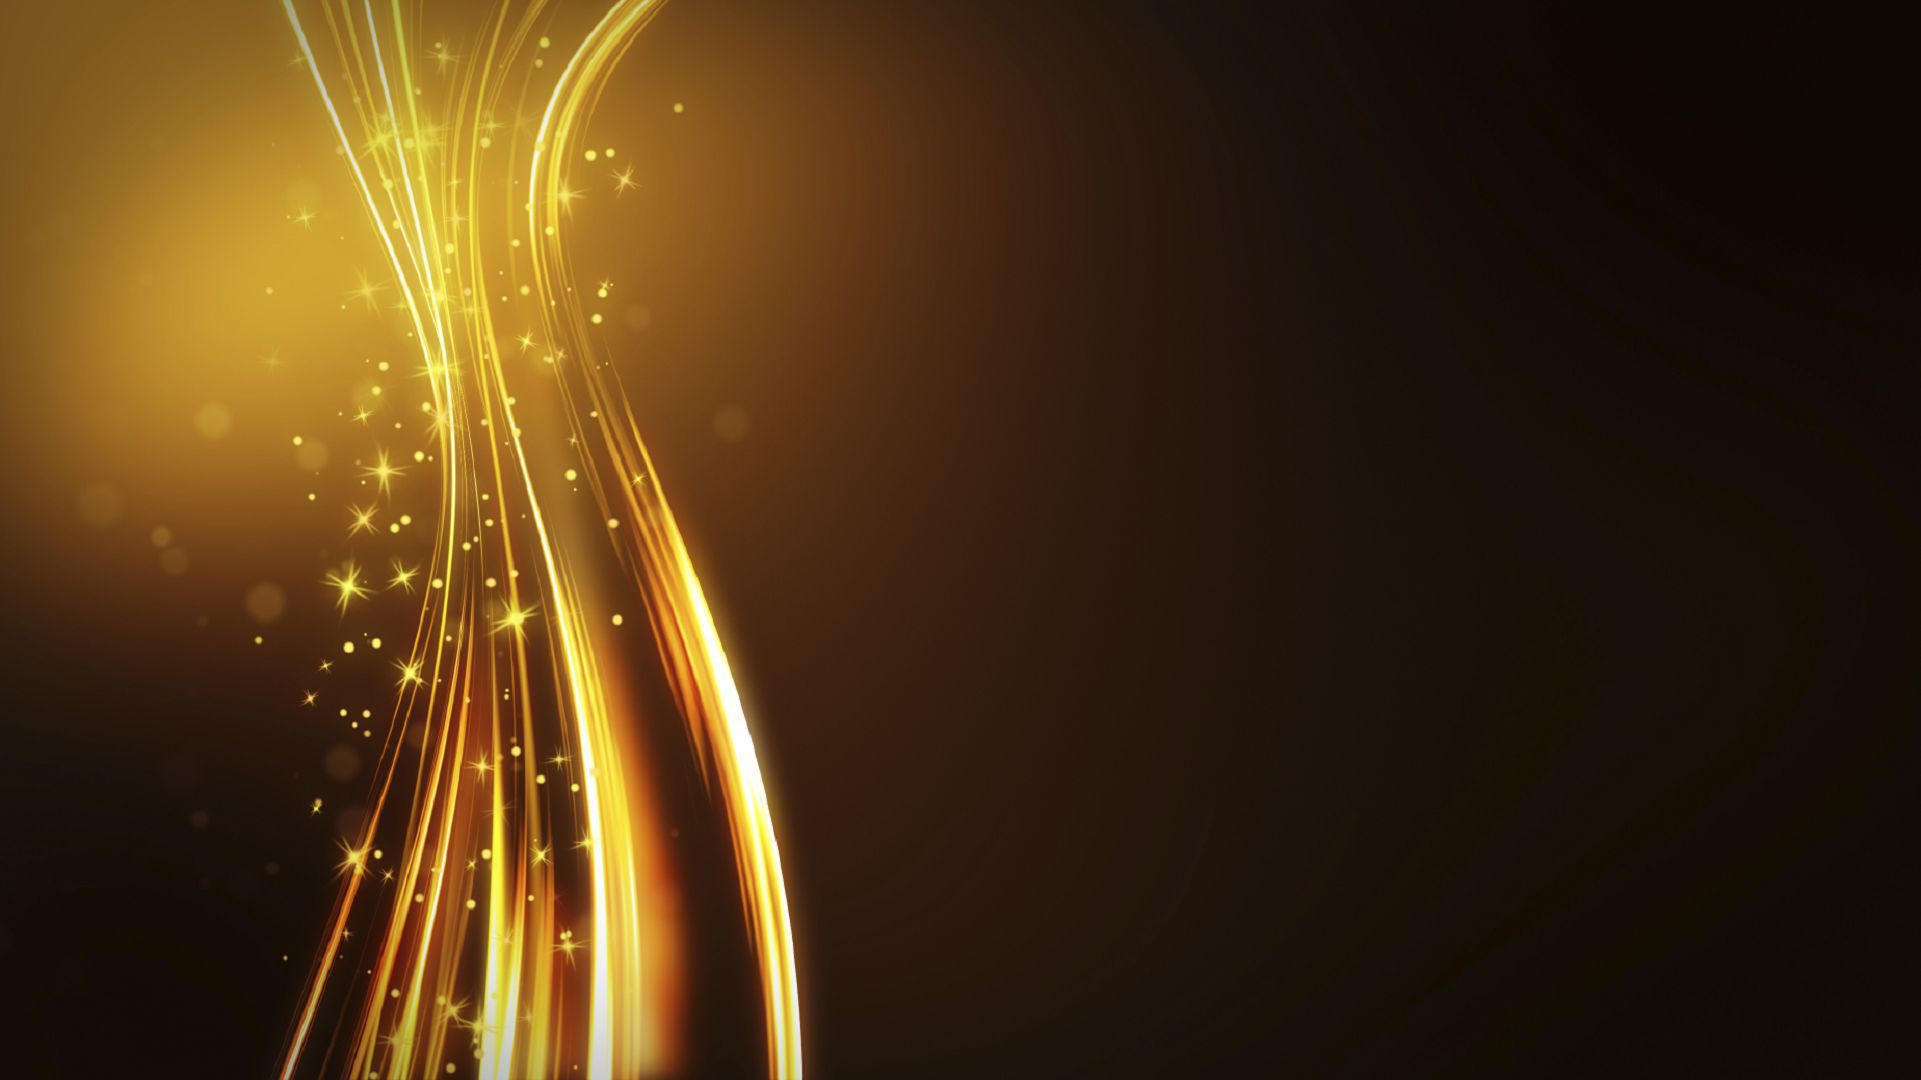 Black And Gold Wallpaper Background